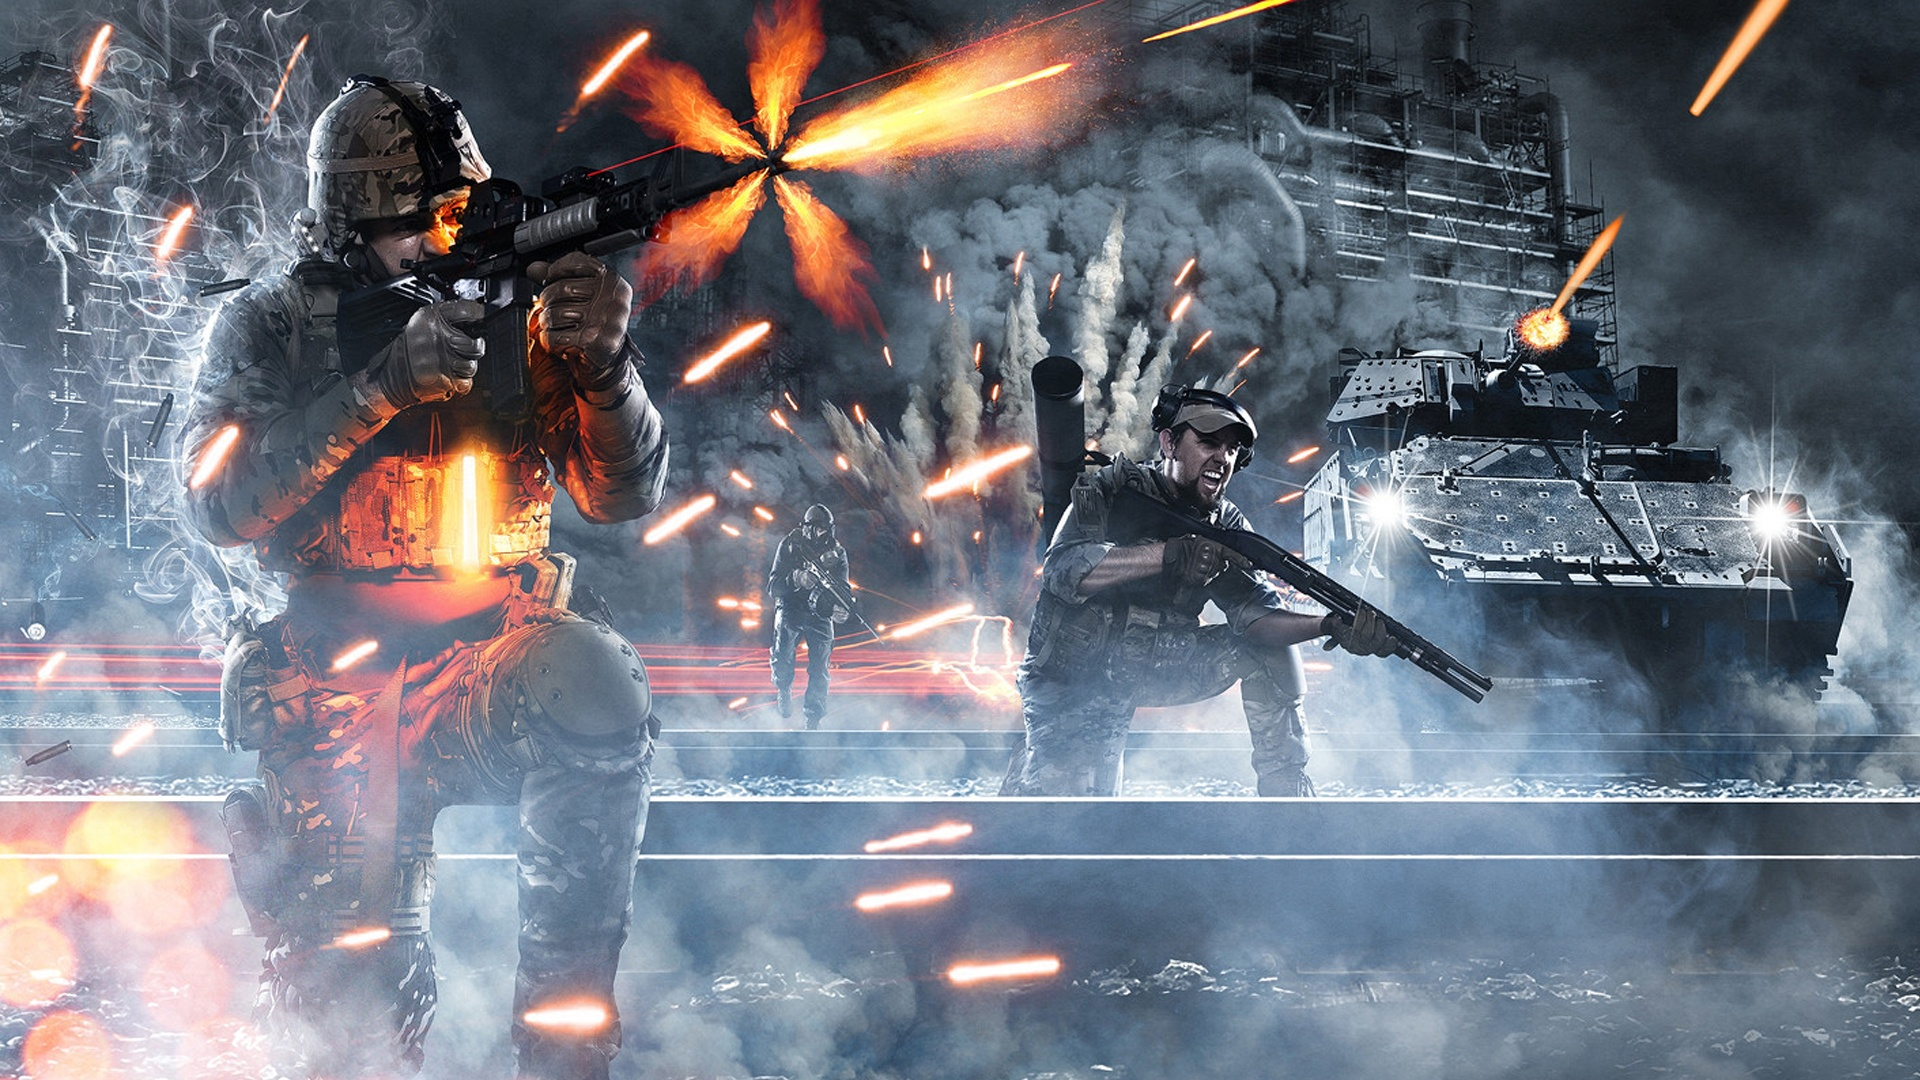 Wallpaper Battlefield 4 1920x1080 Full HD Picture Image